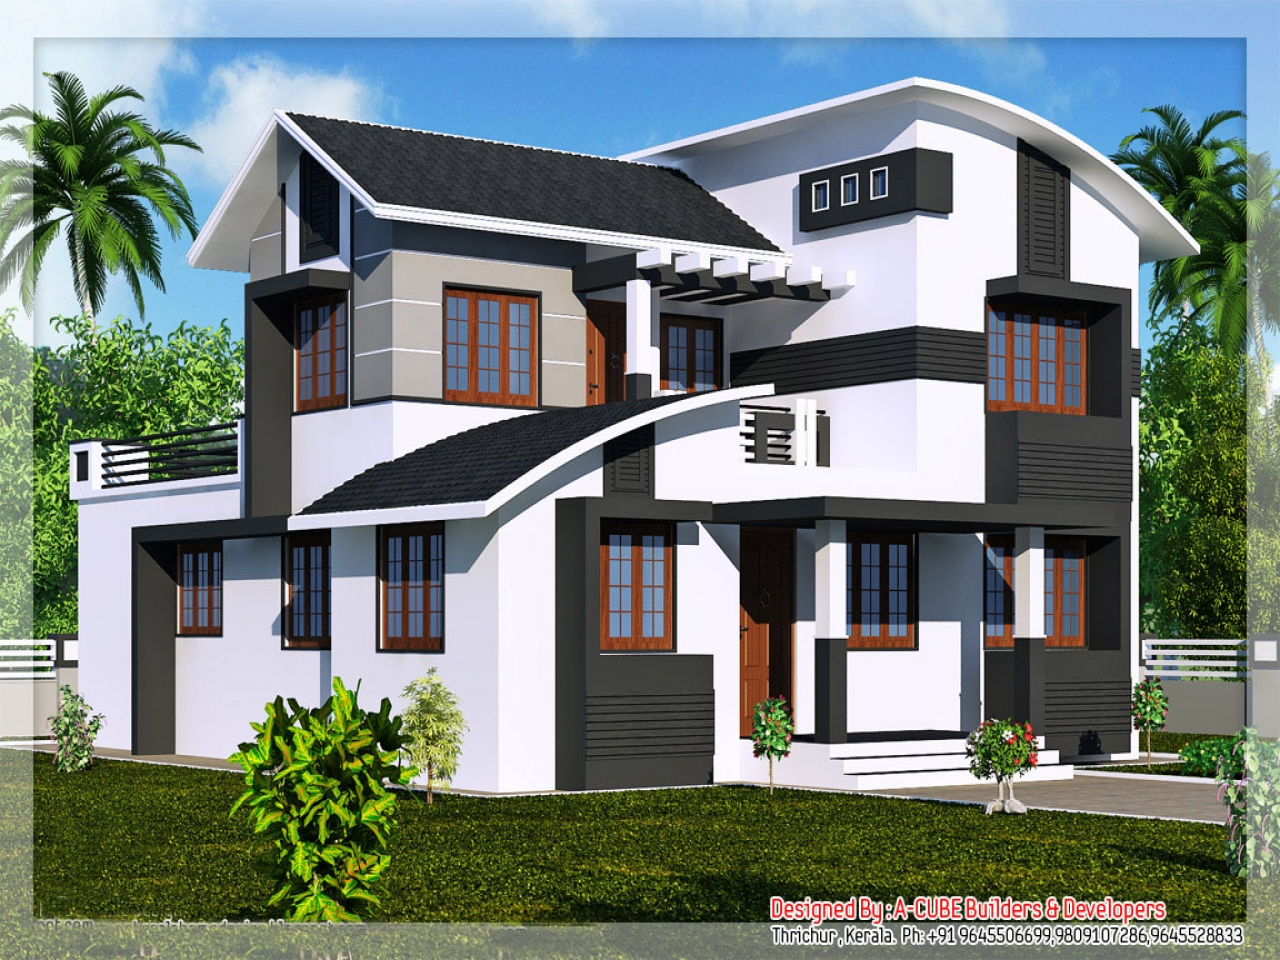 India duplex house design duplex house plans and designs for Design duplex house architecture india